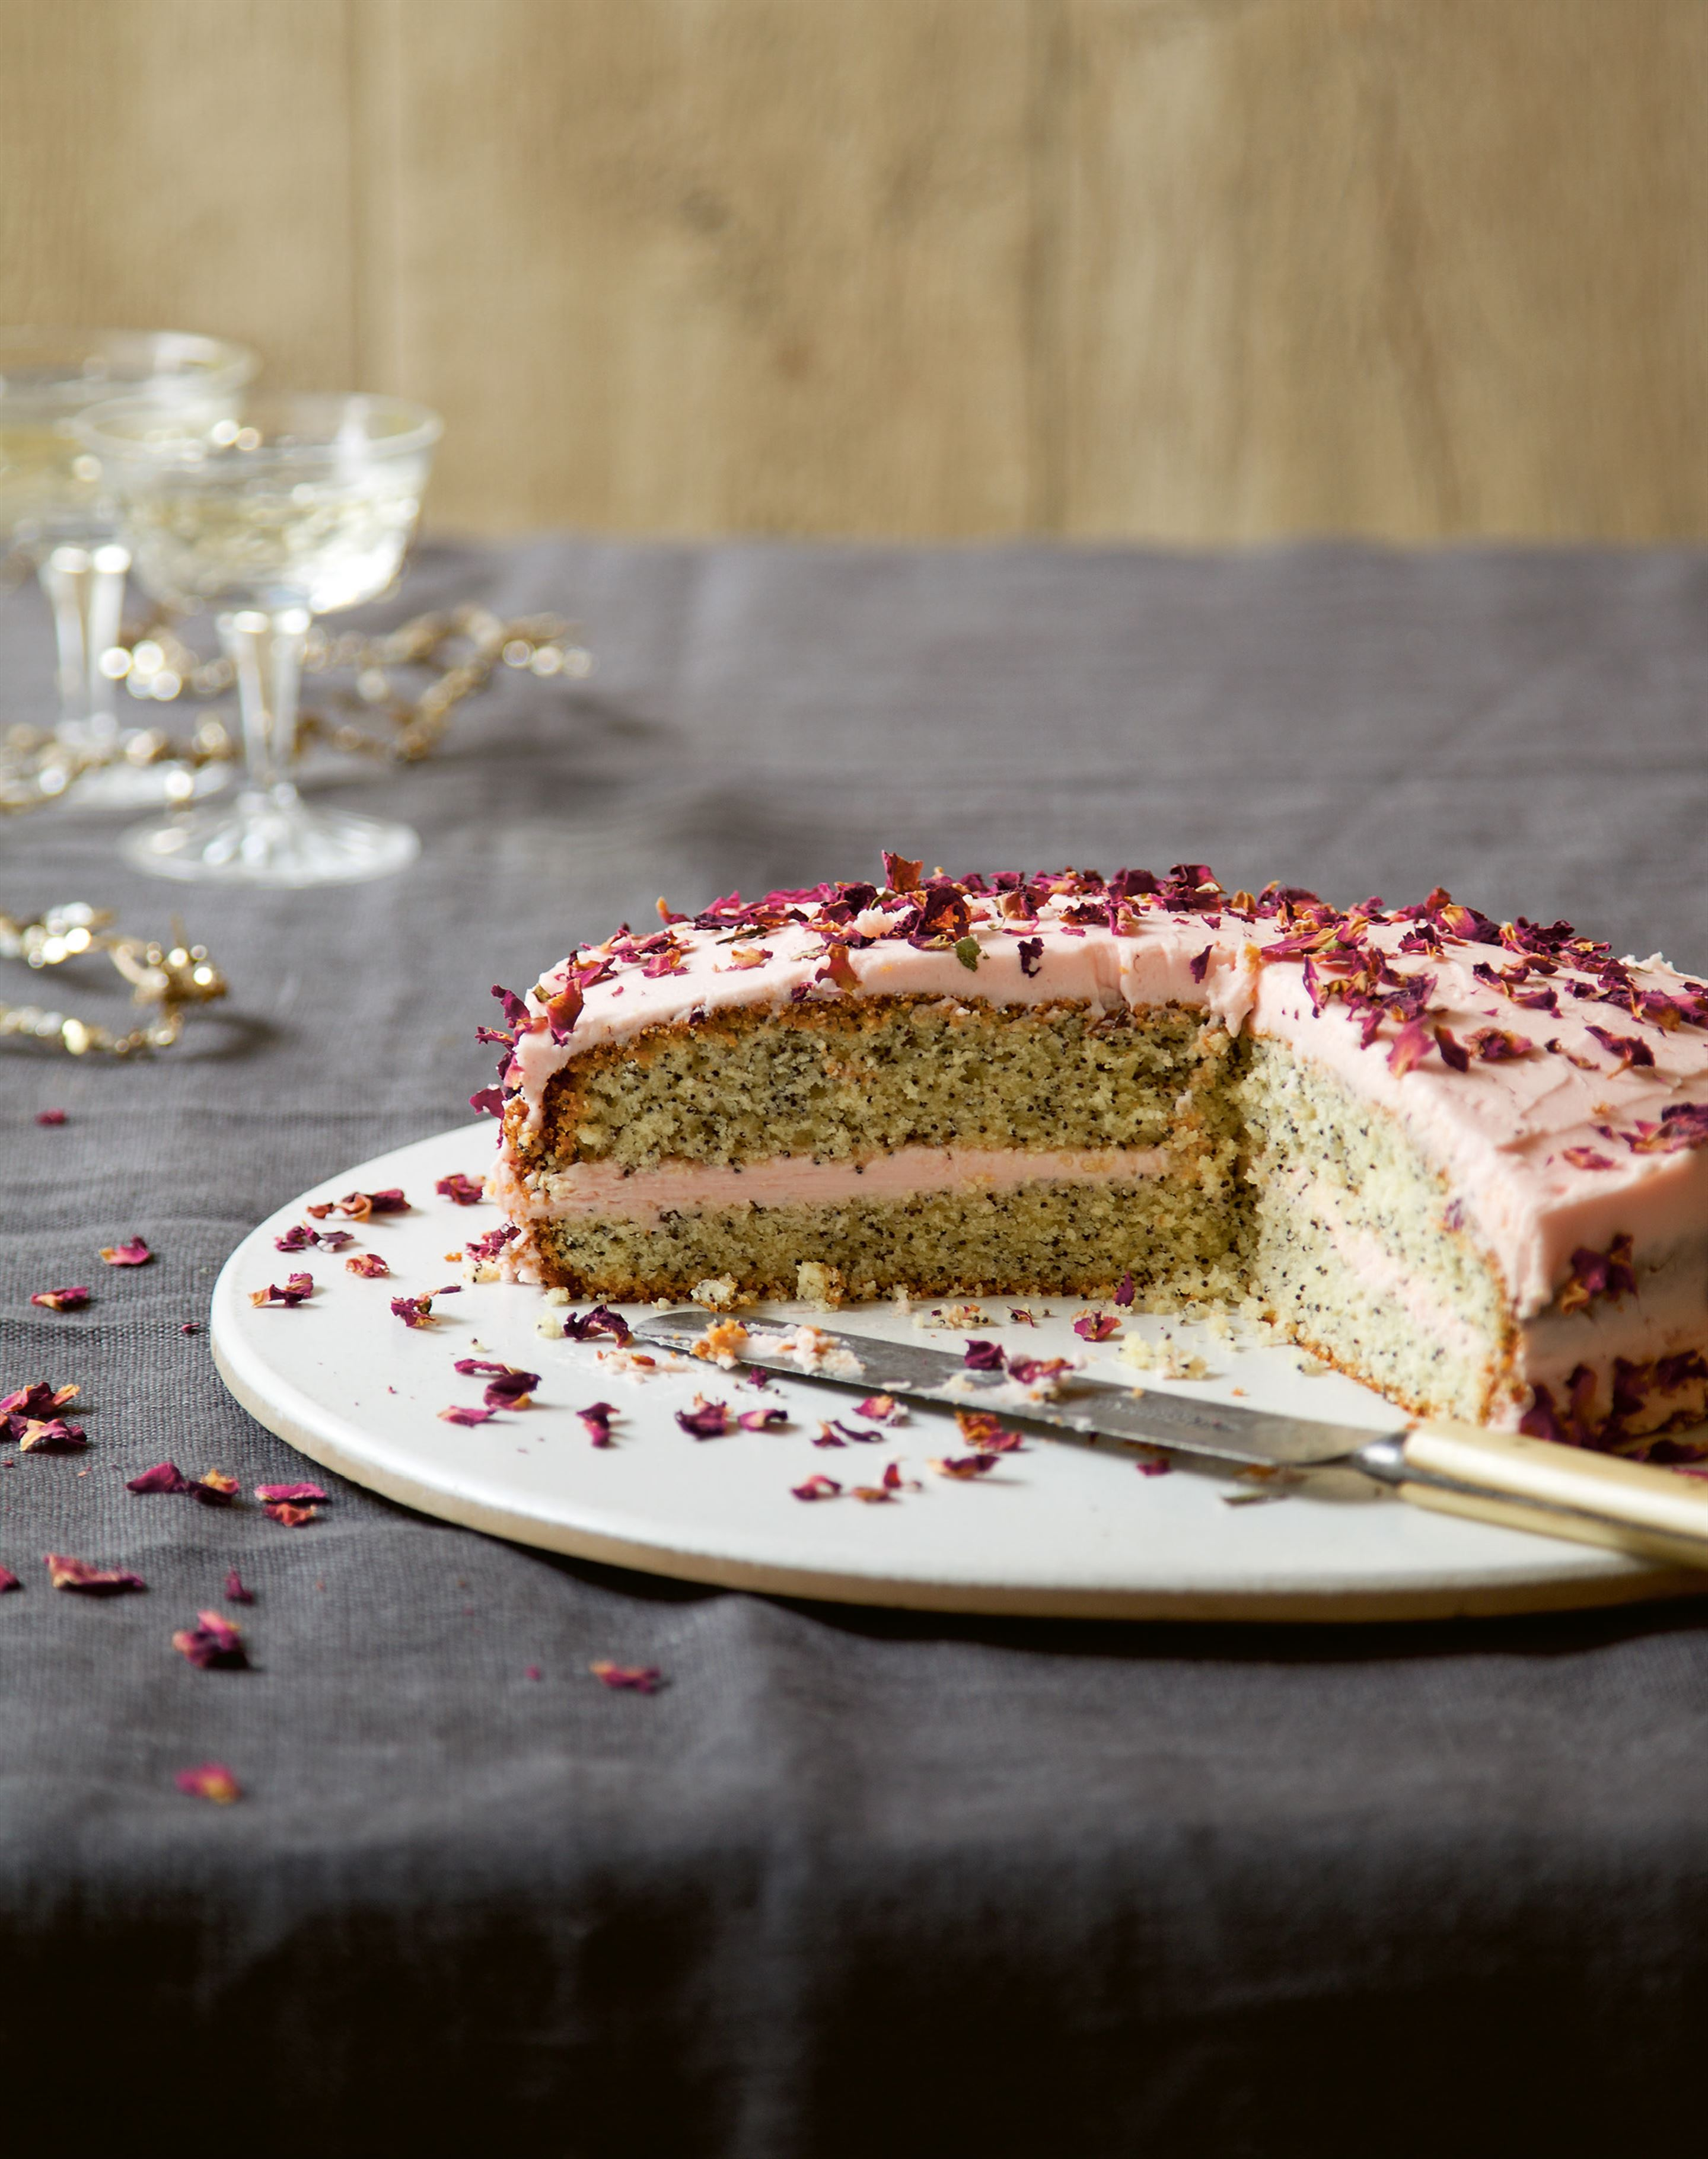 Rose and poppy seed cake